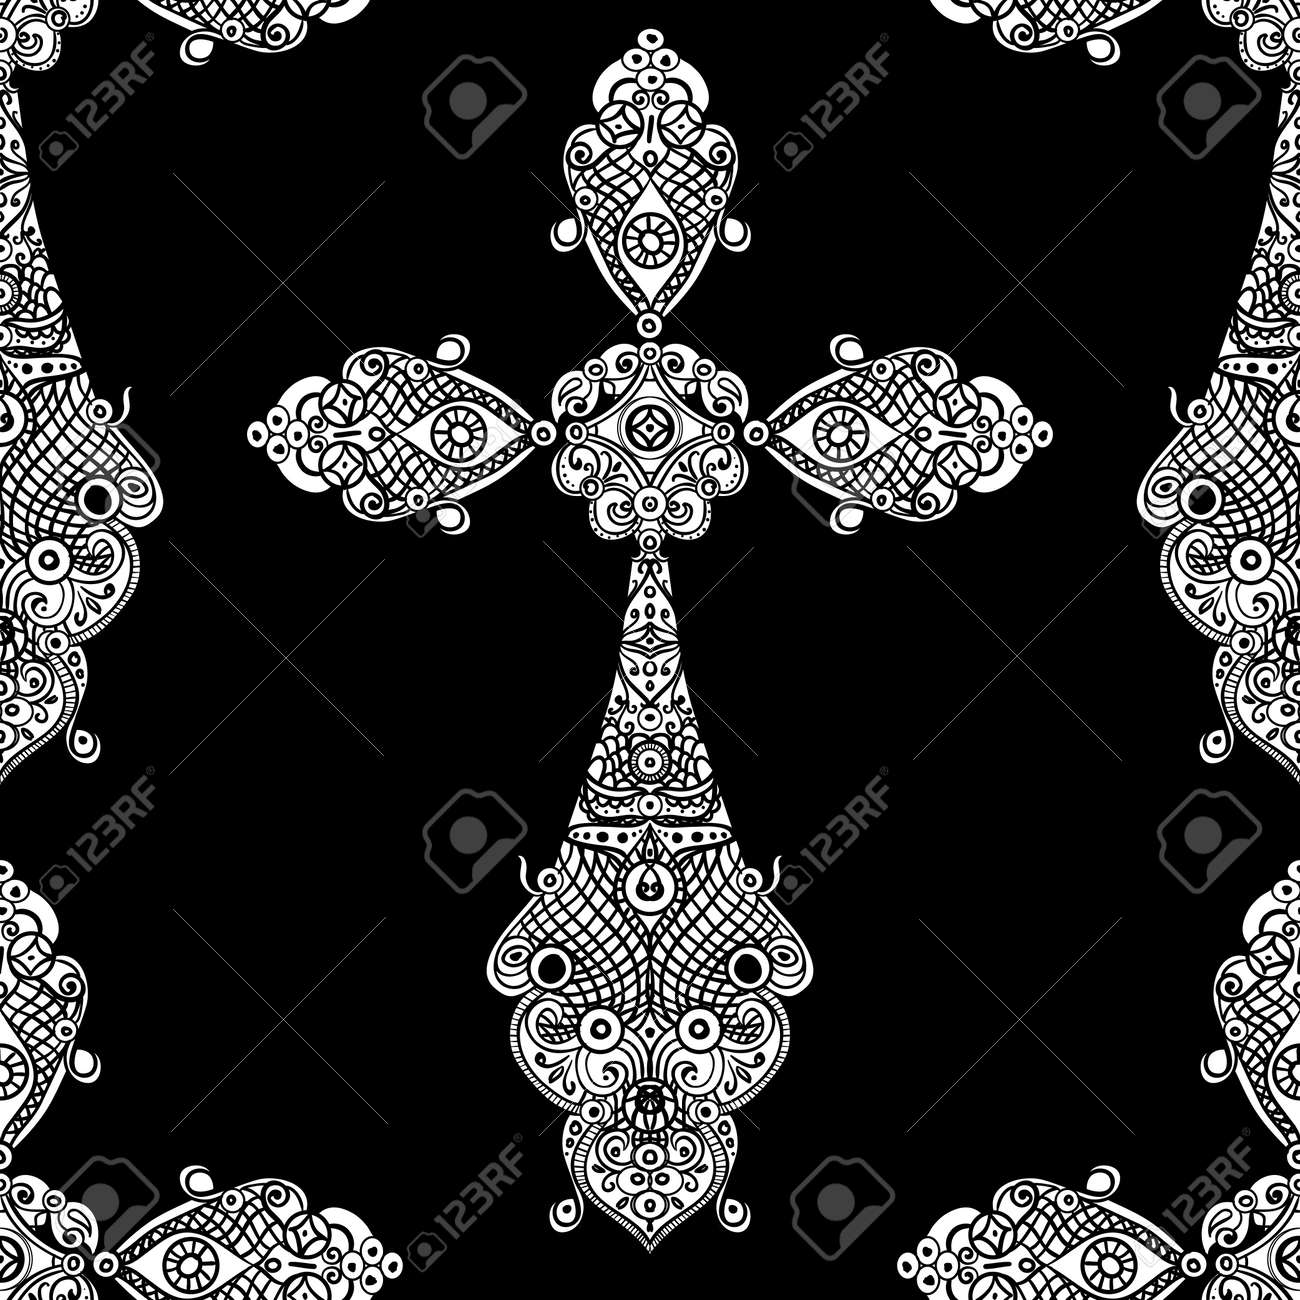 Banque dimages vintage religious crosses in black and white seamless pattern with repeated motif of crucifix for fabric or heraldic design